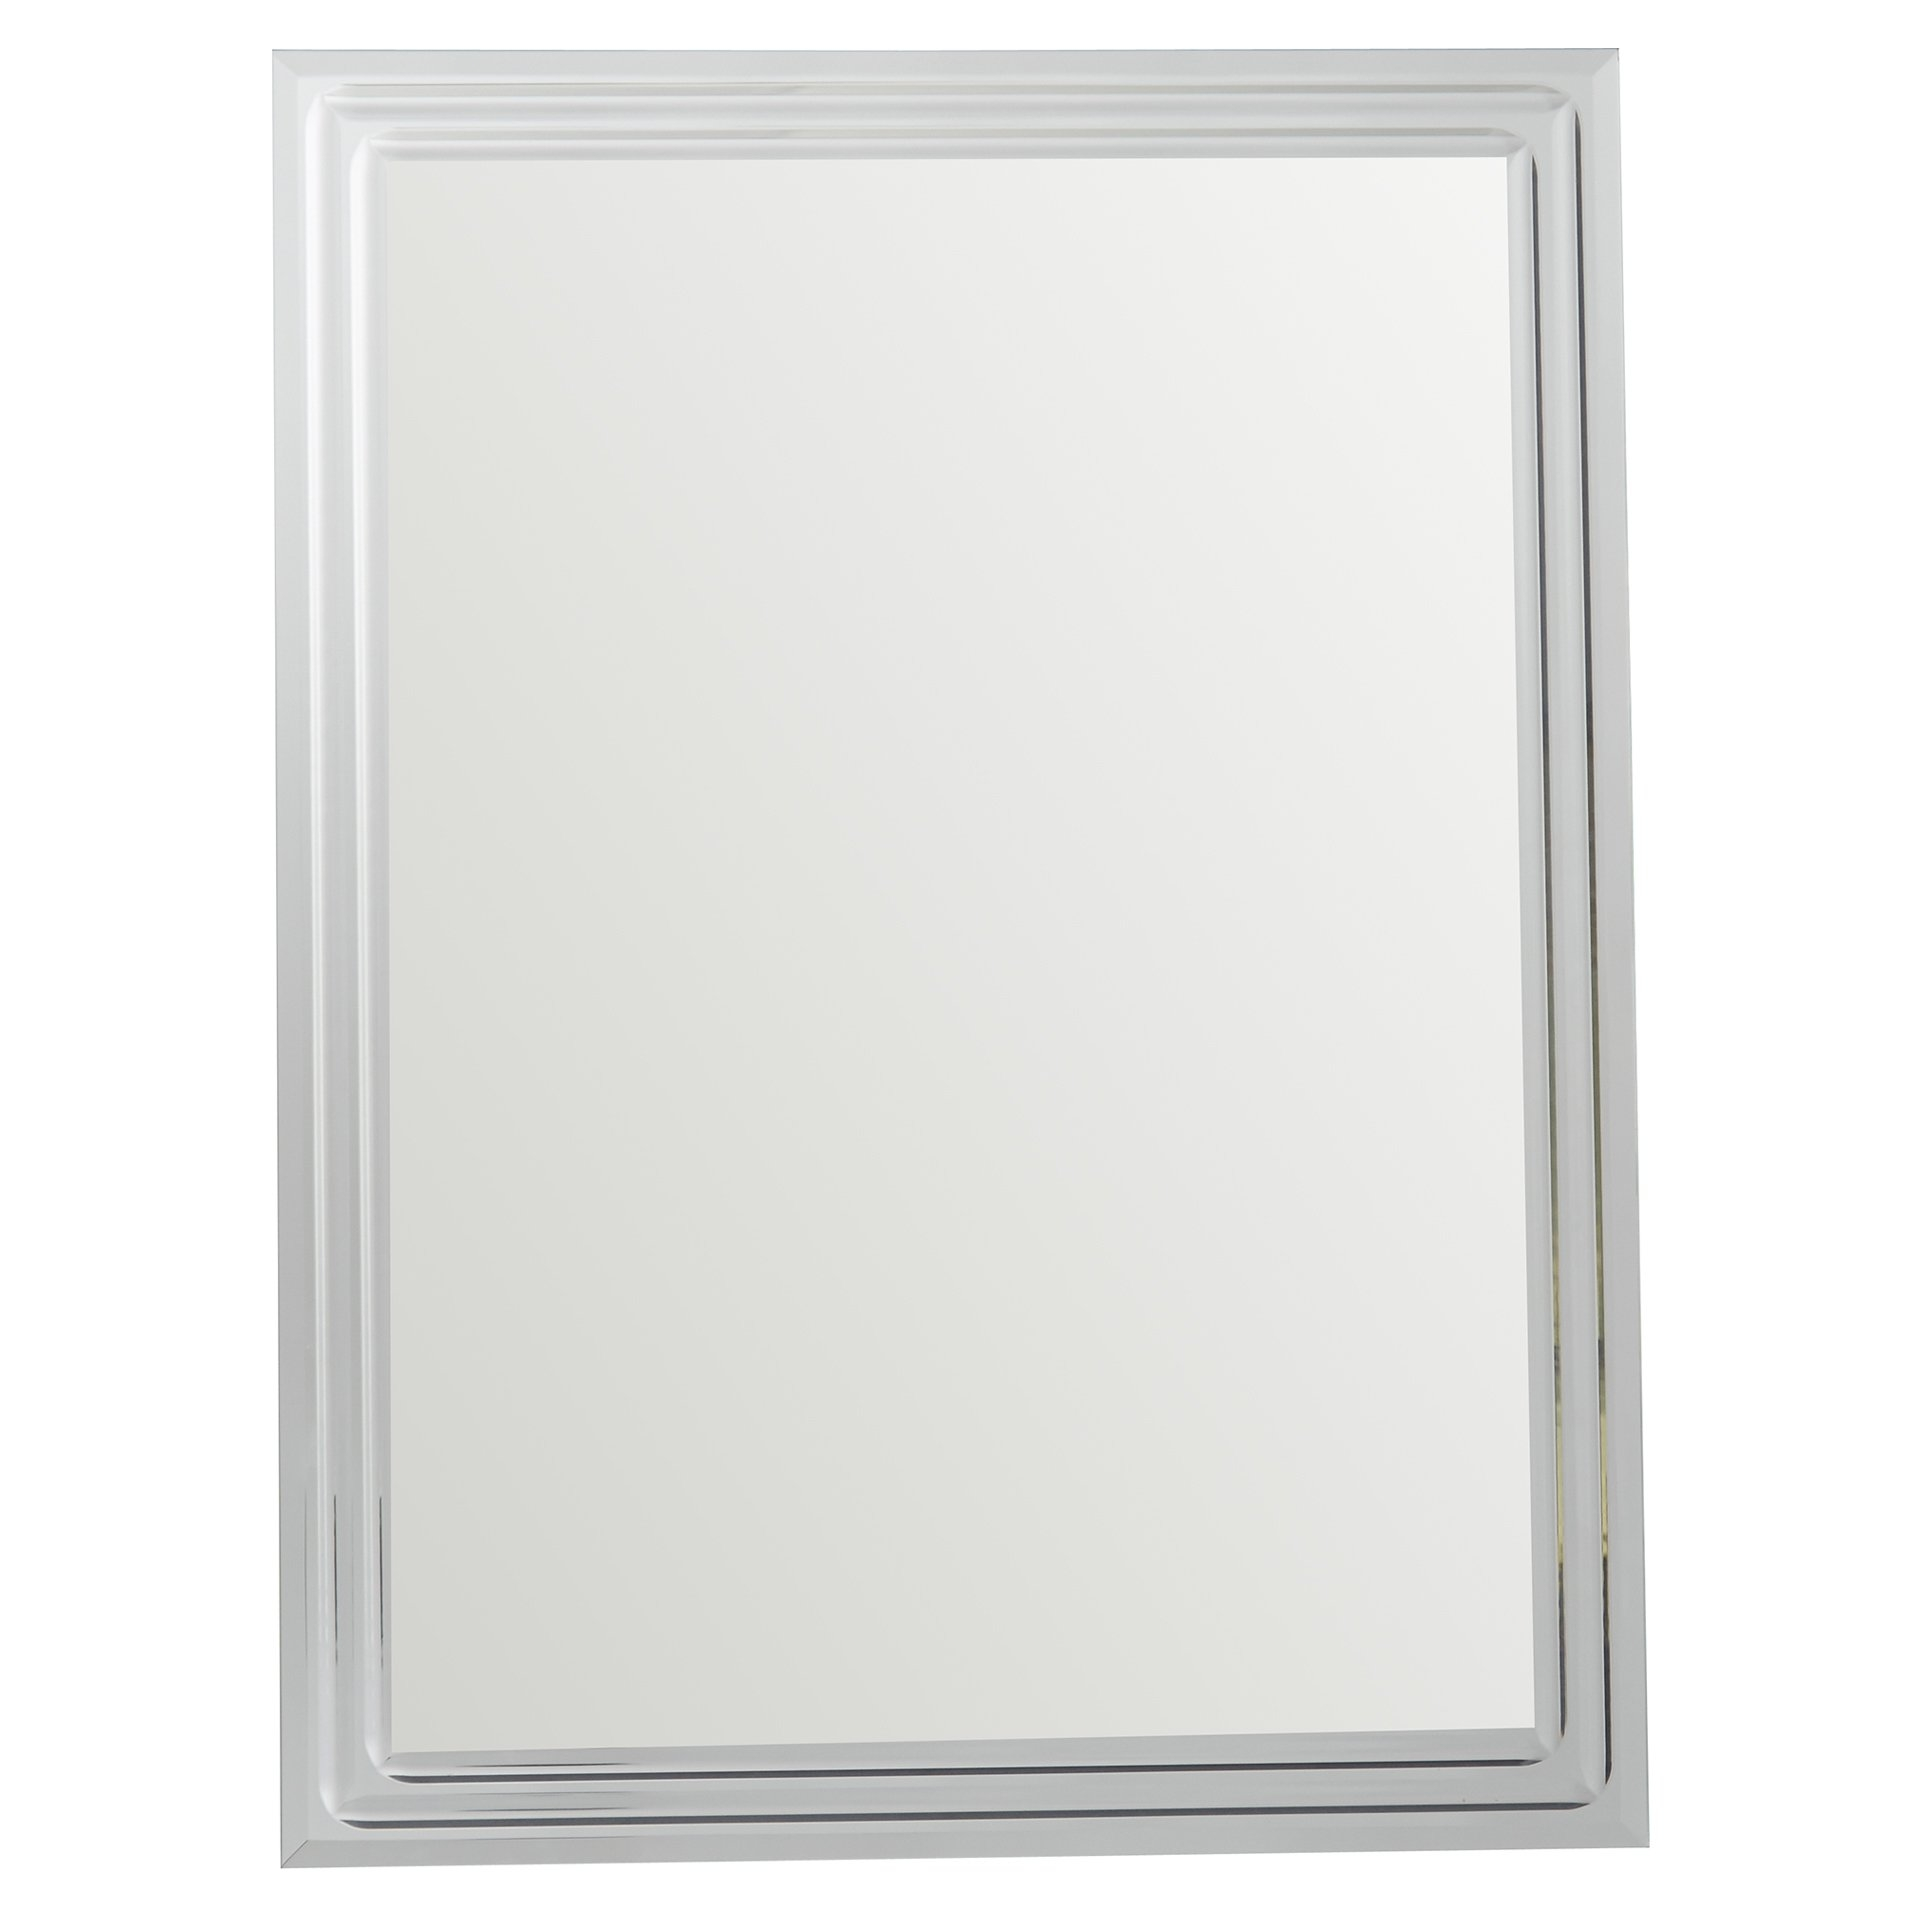 Brayden Studio Frameless Tri Bevel Wall Mirror Reviews Wayfair With Slim Wall Mirror (Image 2 of 15)